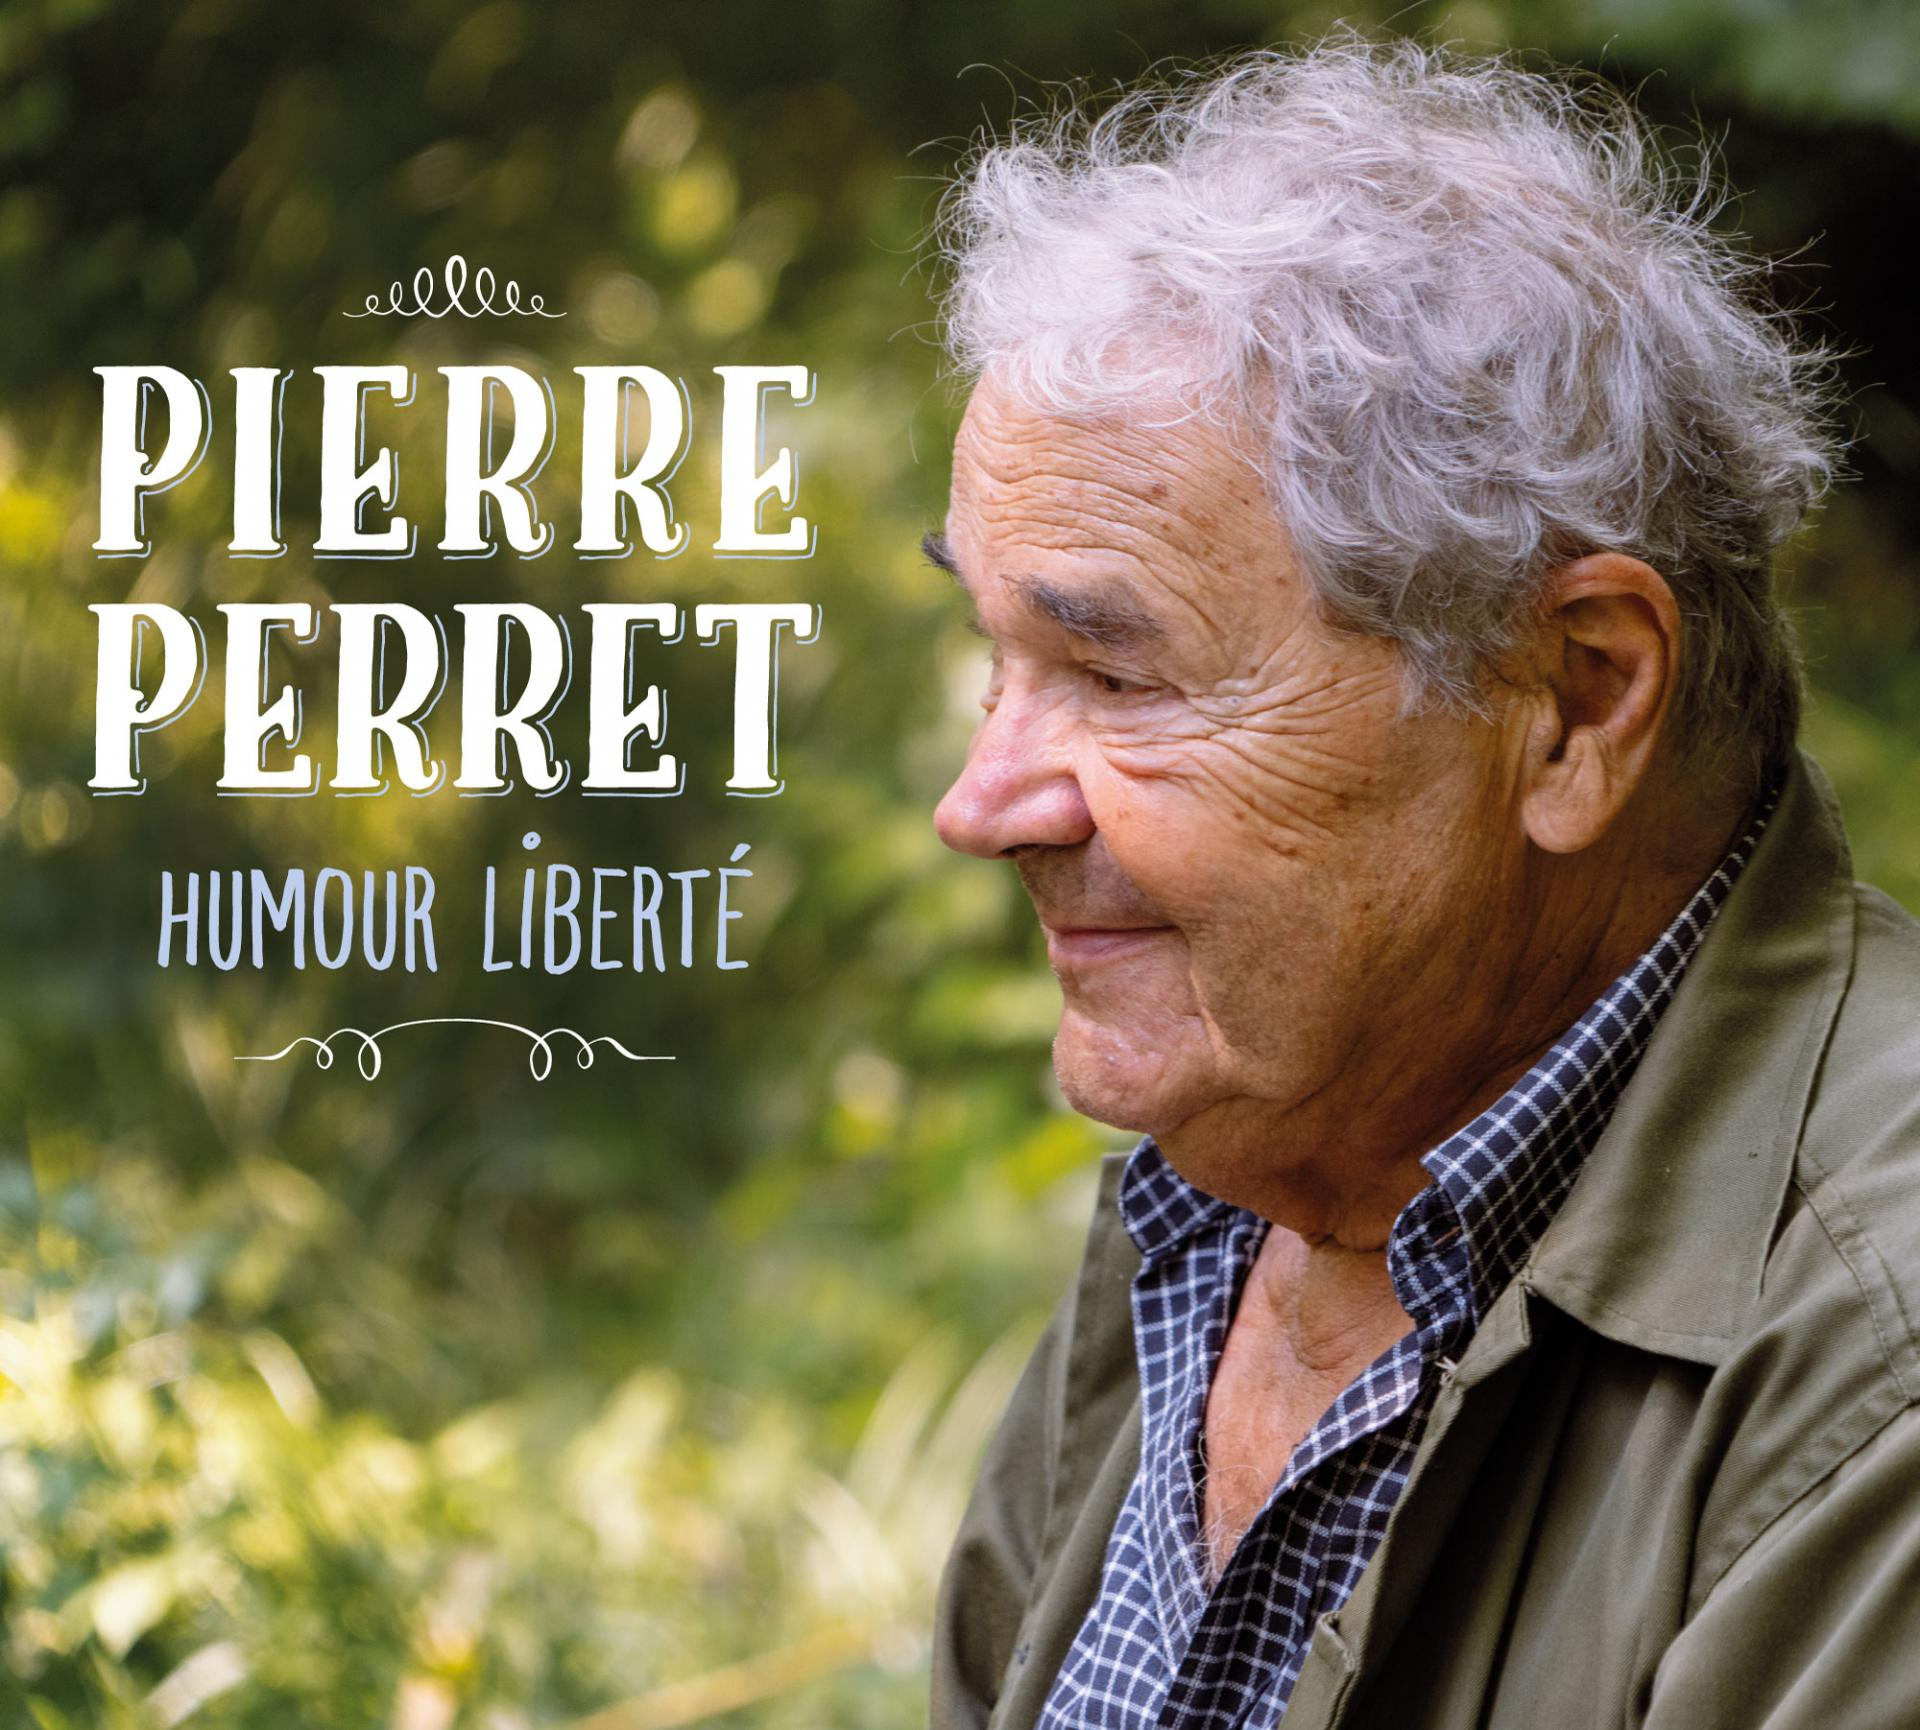 Pierre perret 1